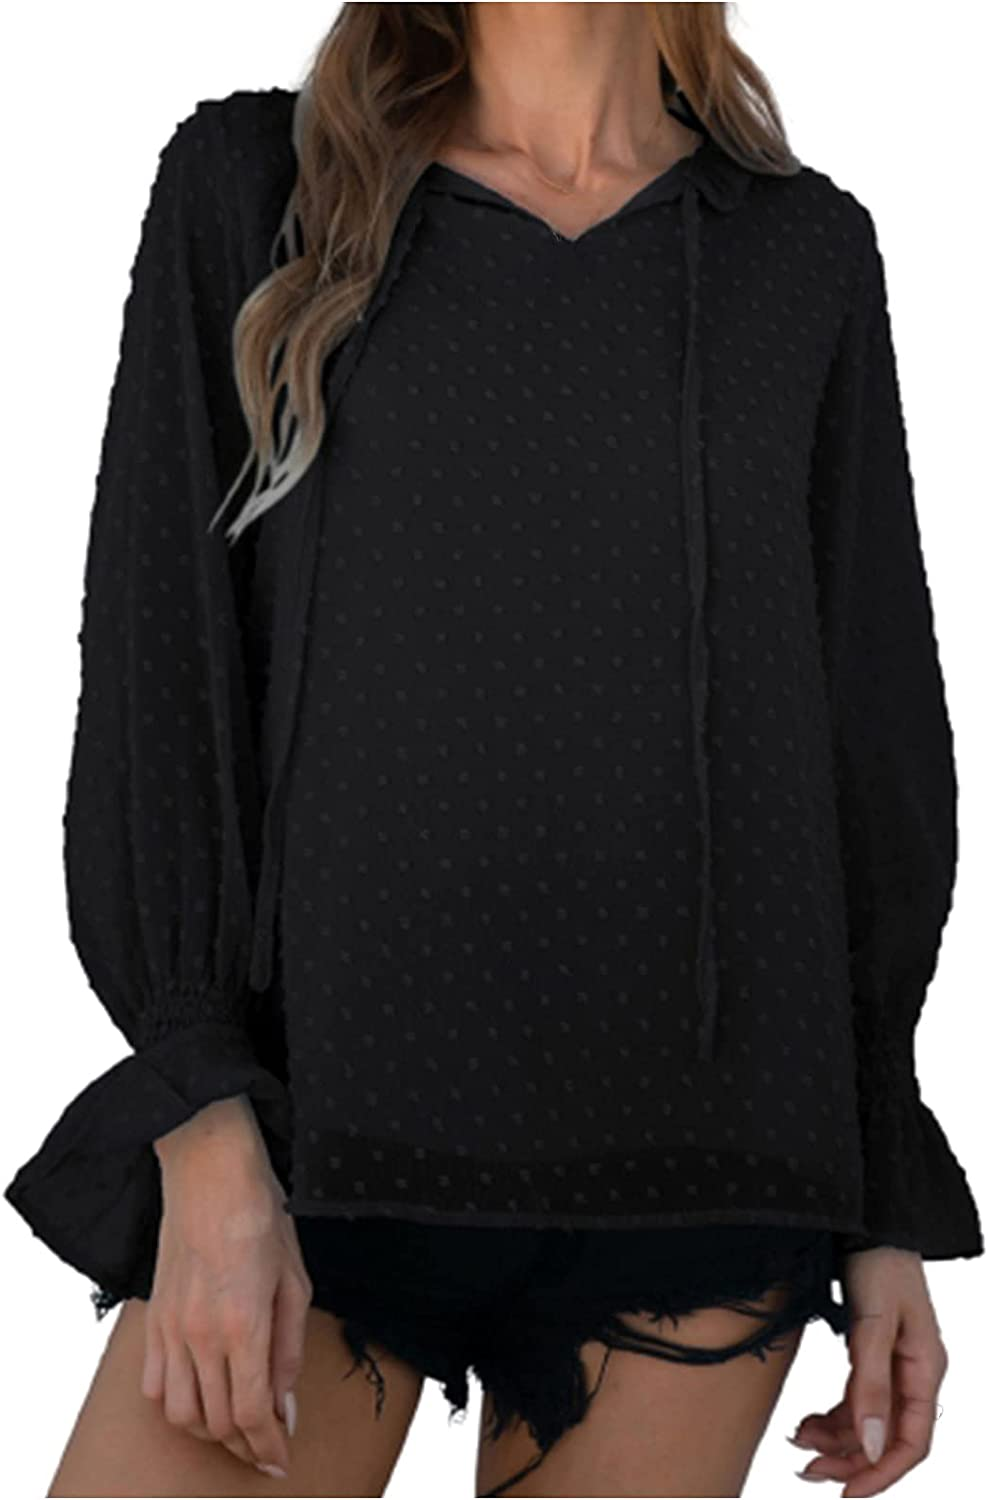 Chiffon Blouses for Women V-neck Solid Color Loose Flared Long Sleeve Fashion Elegant Drawstring Top Blouse